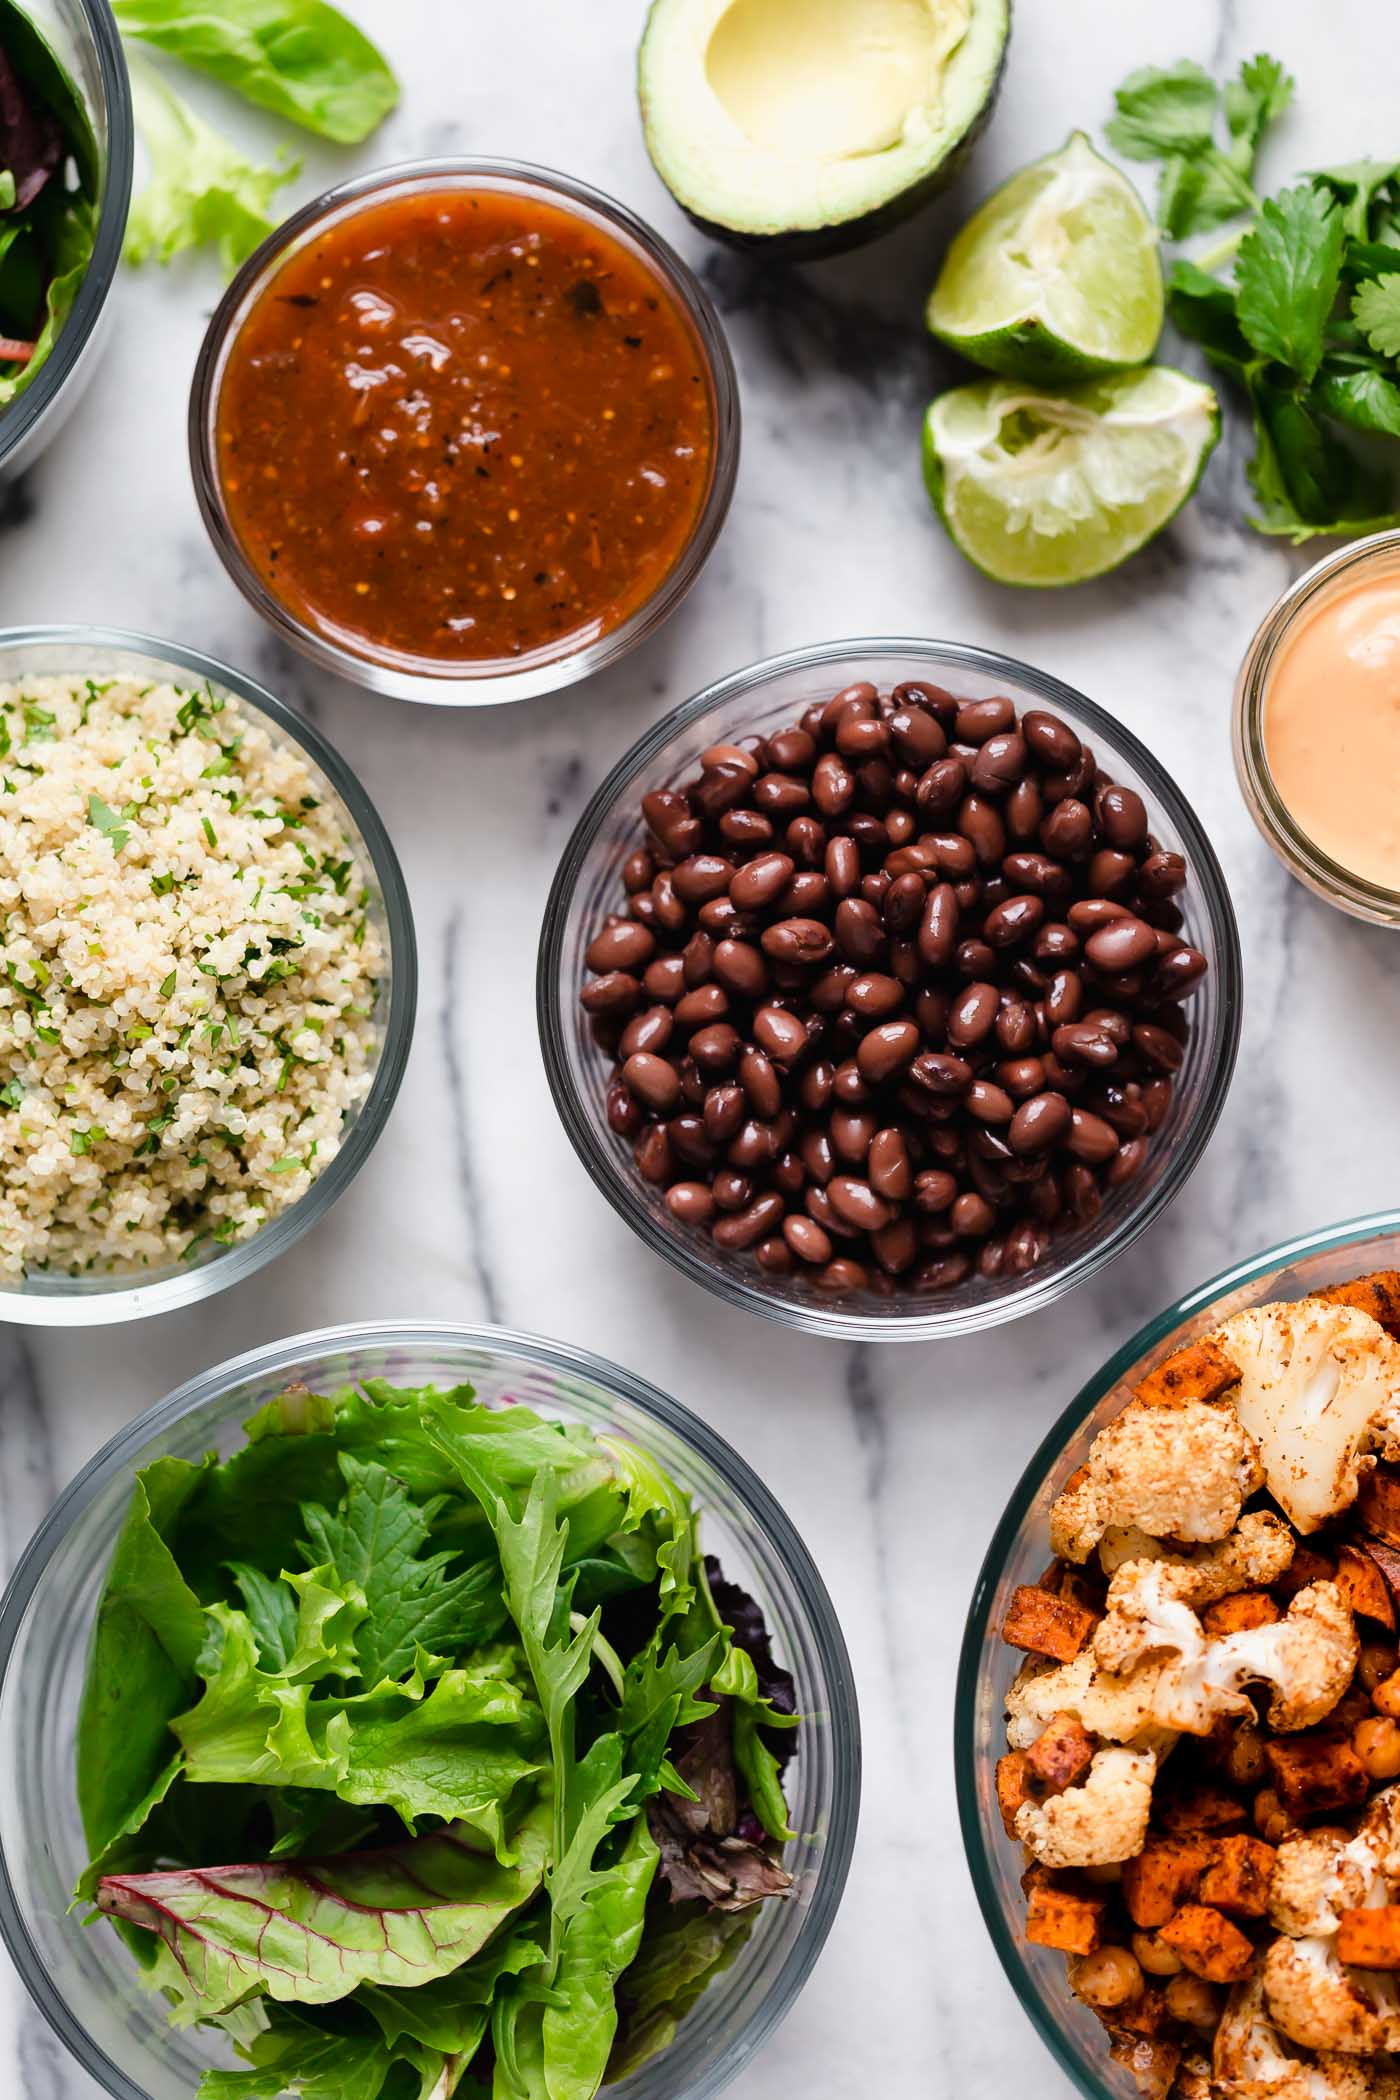 an easy roasted veggie vegan taco salad recipe! this plant-based taco salad is piled high with roasted cauliflower, sweet potatoes, & chickpeas, plus any other taco toppings you love, & served with a homemade smoky & creamy cashew vegan taco salad dressing that's so good you'll want to eat it by the spoonful! the perfect easy meatless monday dinner, or healthy lunch to meal prep for the week. #playswellwithbutter #vegantacosalad #healthytacosalad #vegansalad #veganrecipes #plantbasedrecipes